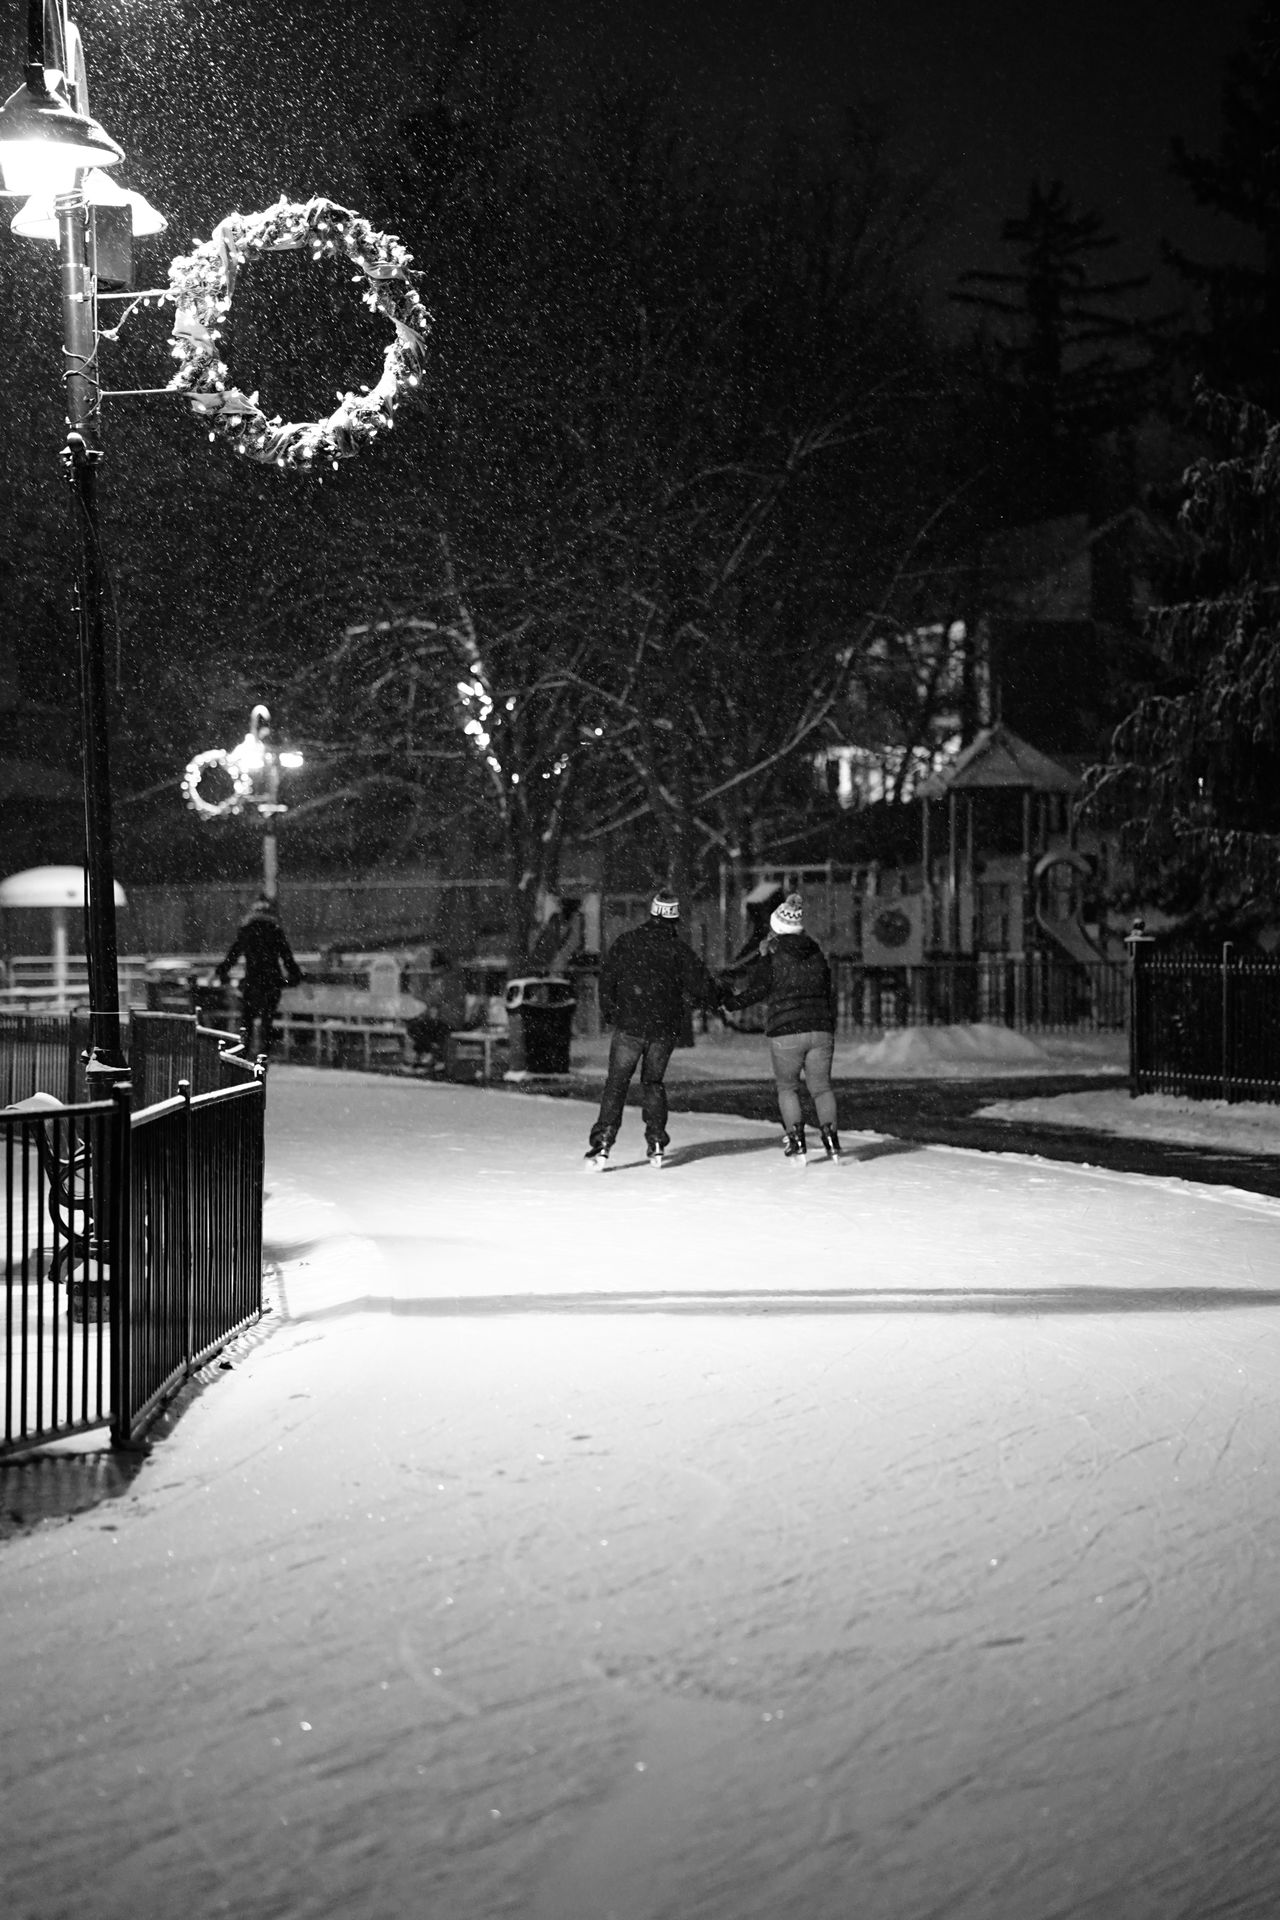 cold evening skate in Canada Black And White Canary Islands Enjoying Life Frigid Men Monochrome MusiXmatch Night Only Men Outdoors People People Photography Real People Skate Skating Sky Sport Winter